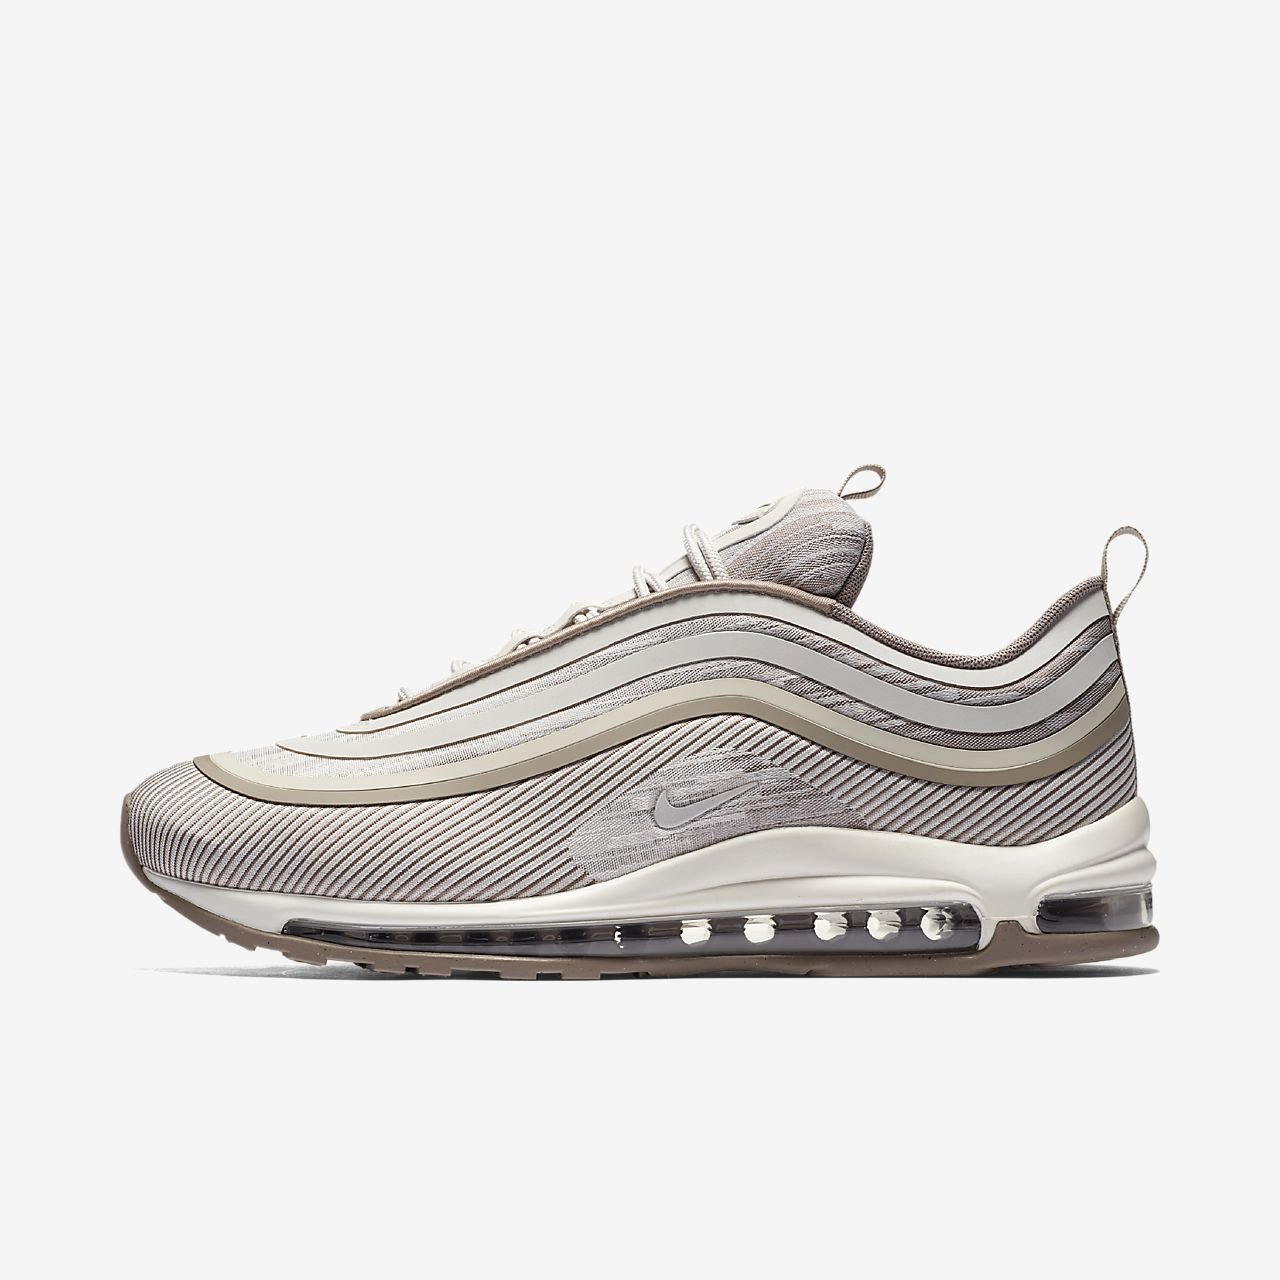 0364be79276 Nike Air Max 97 Ultra '17 Men's Shoe